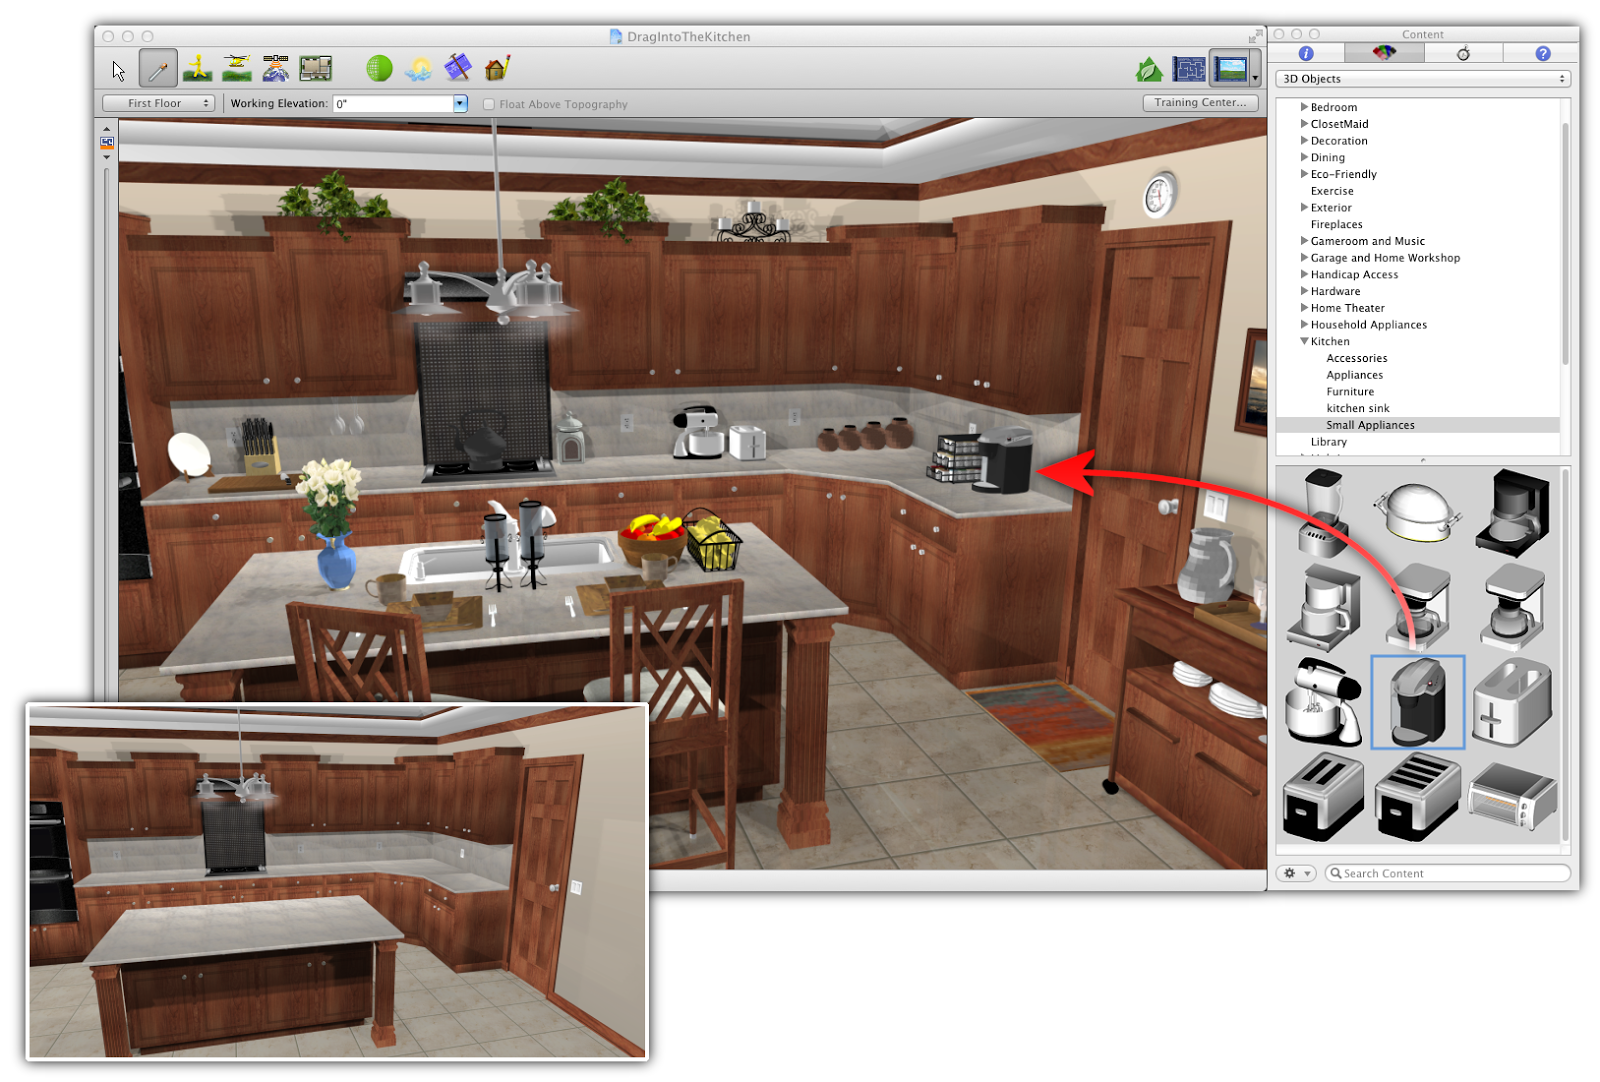 Keydia Mac Home Design Studio V17 5 For Macosx Free Download App For Designing Homes Gardens